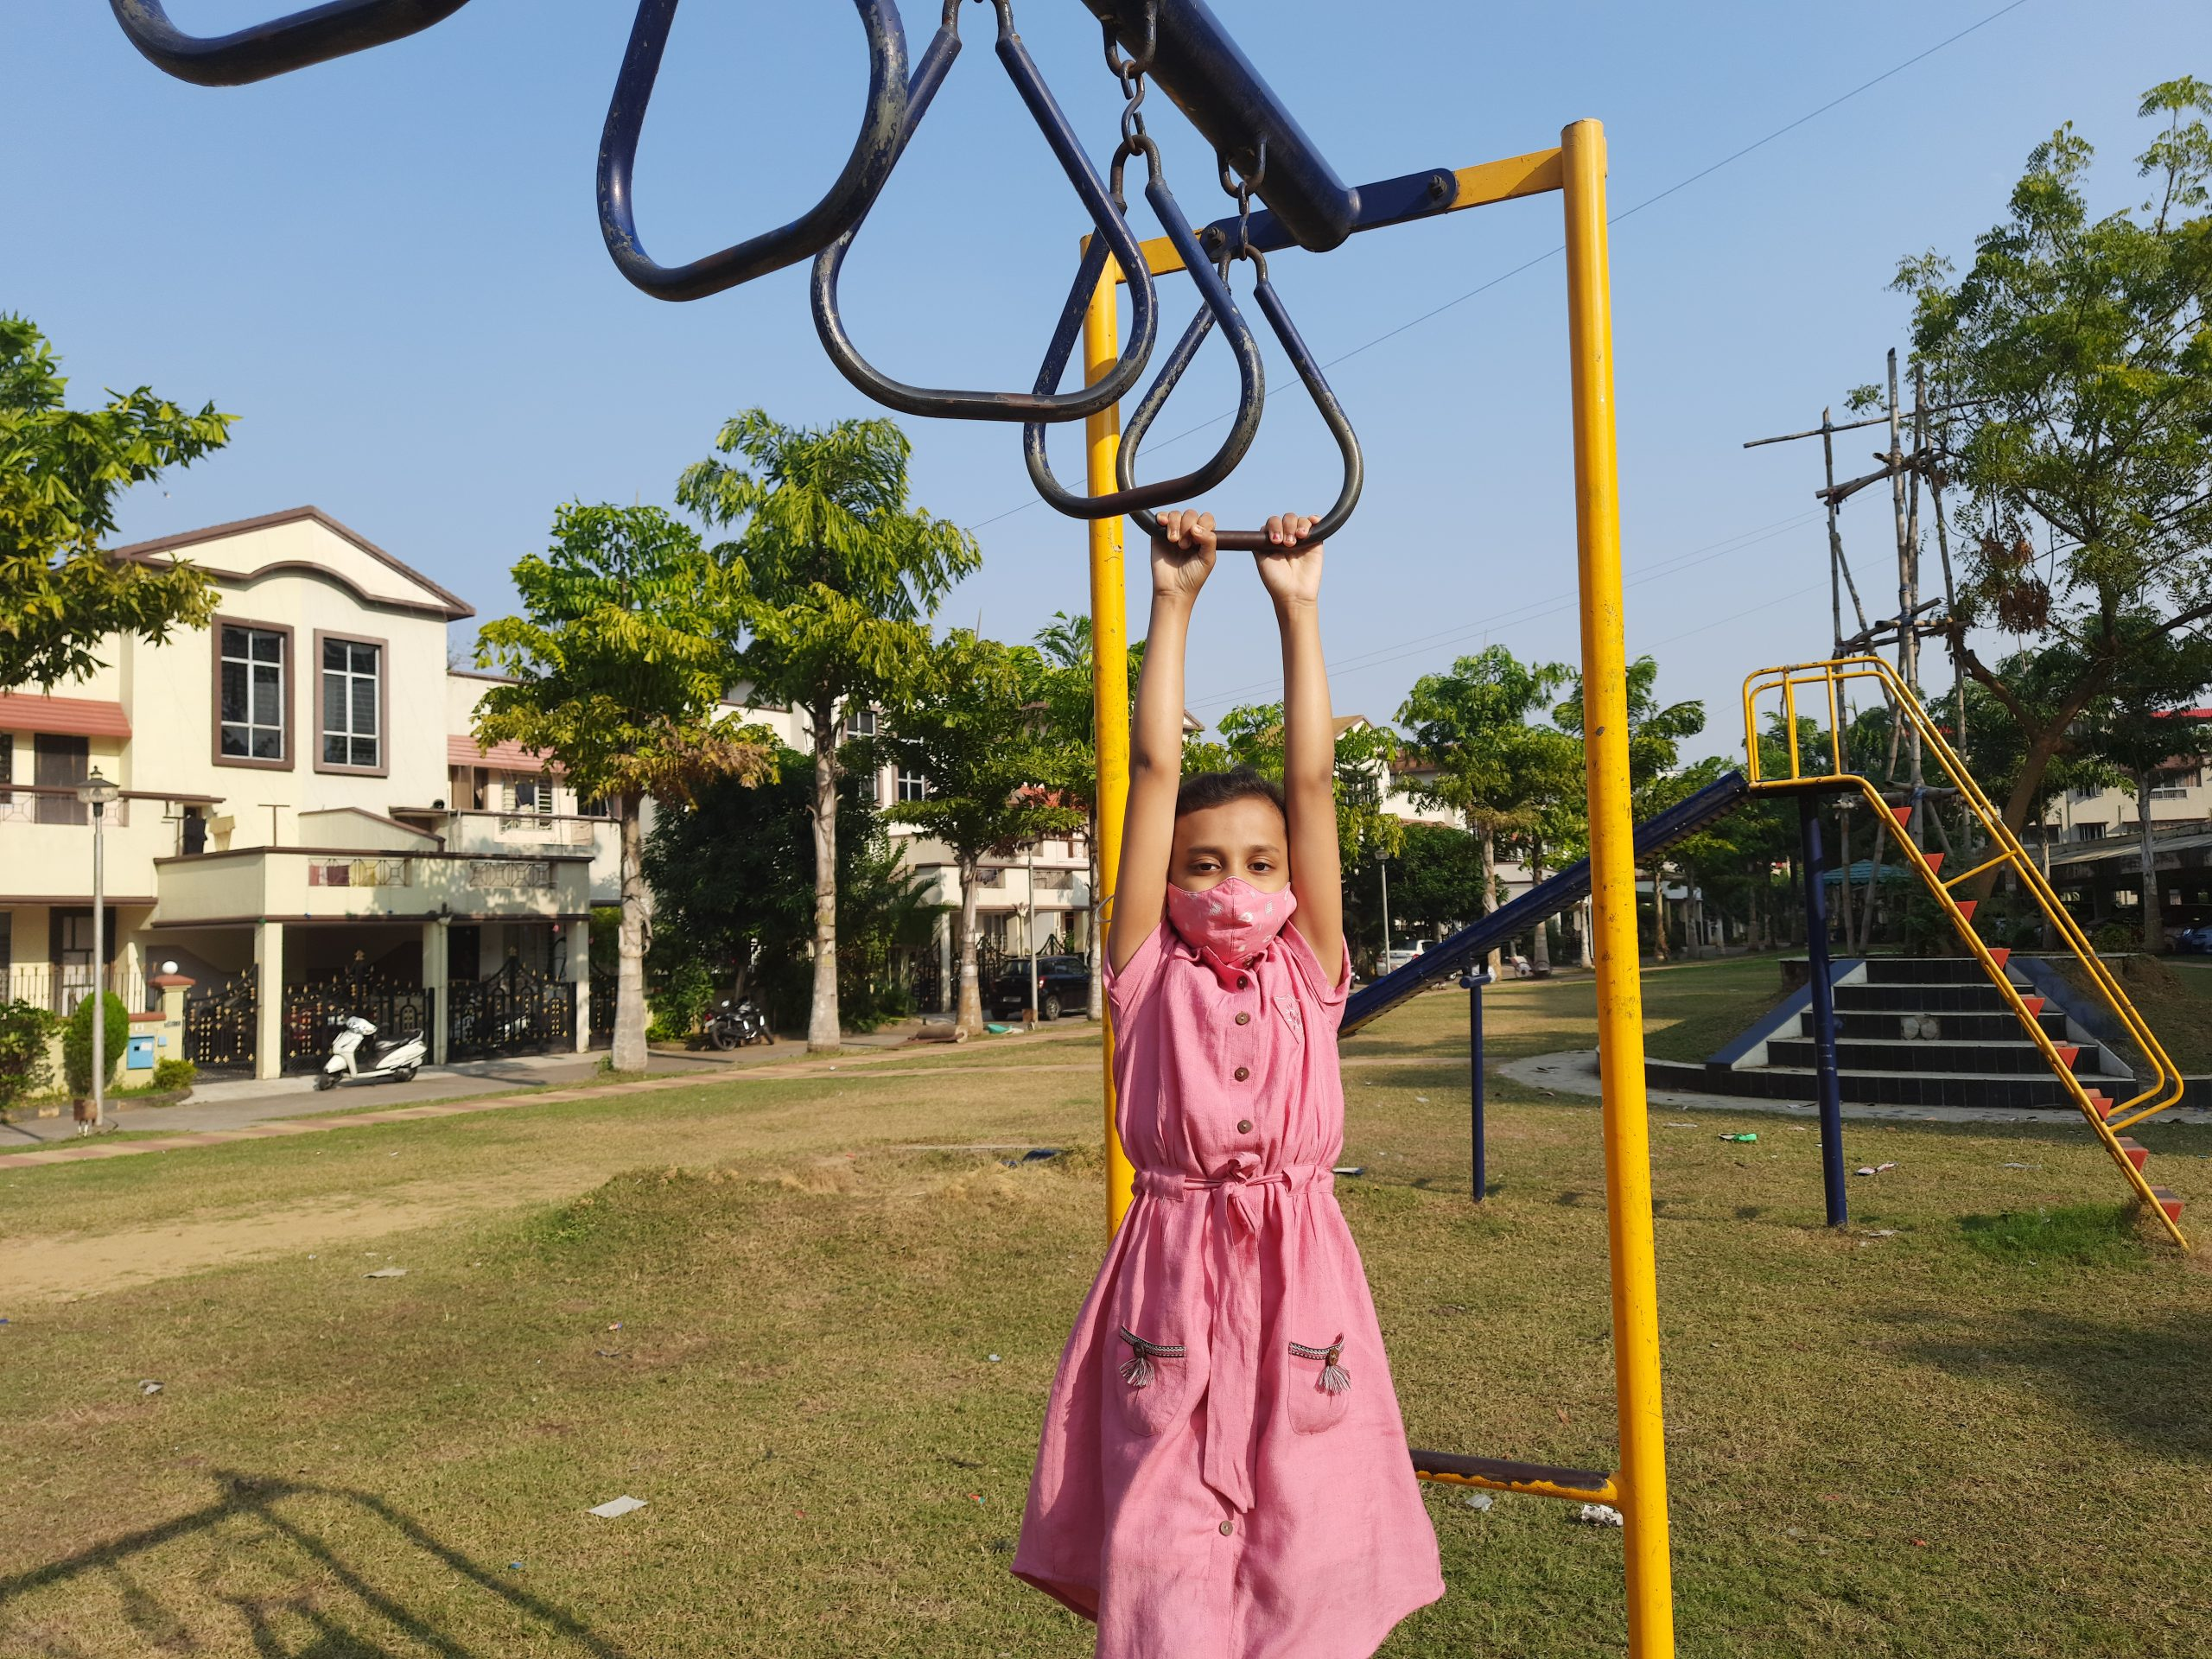 A girl exercising in a park